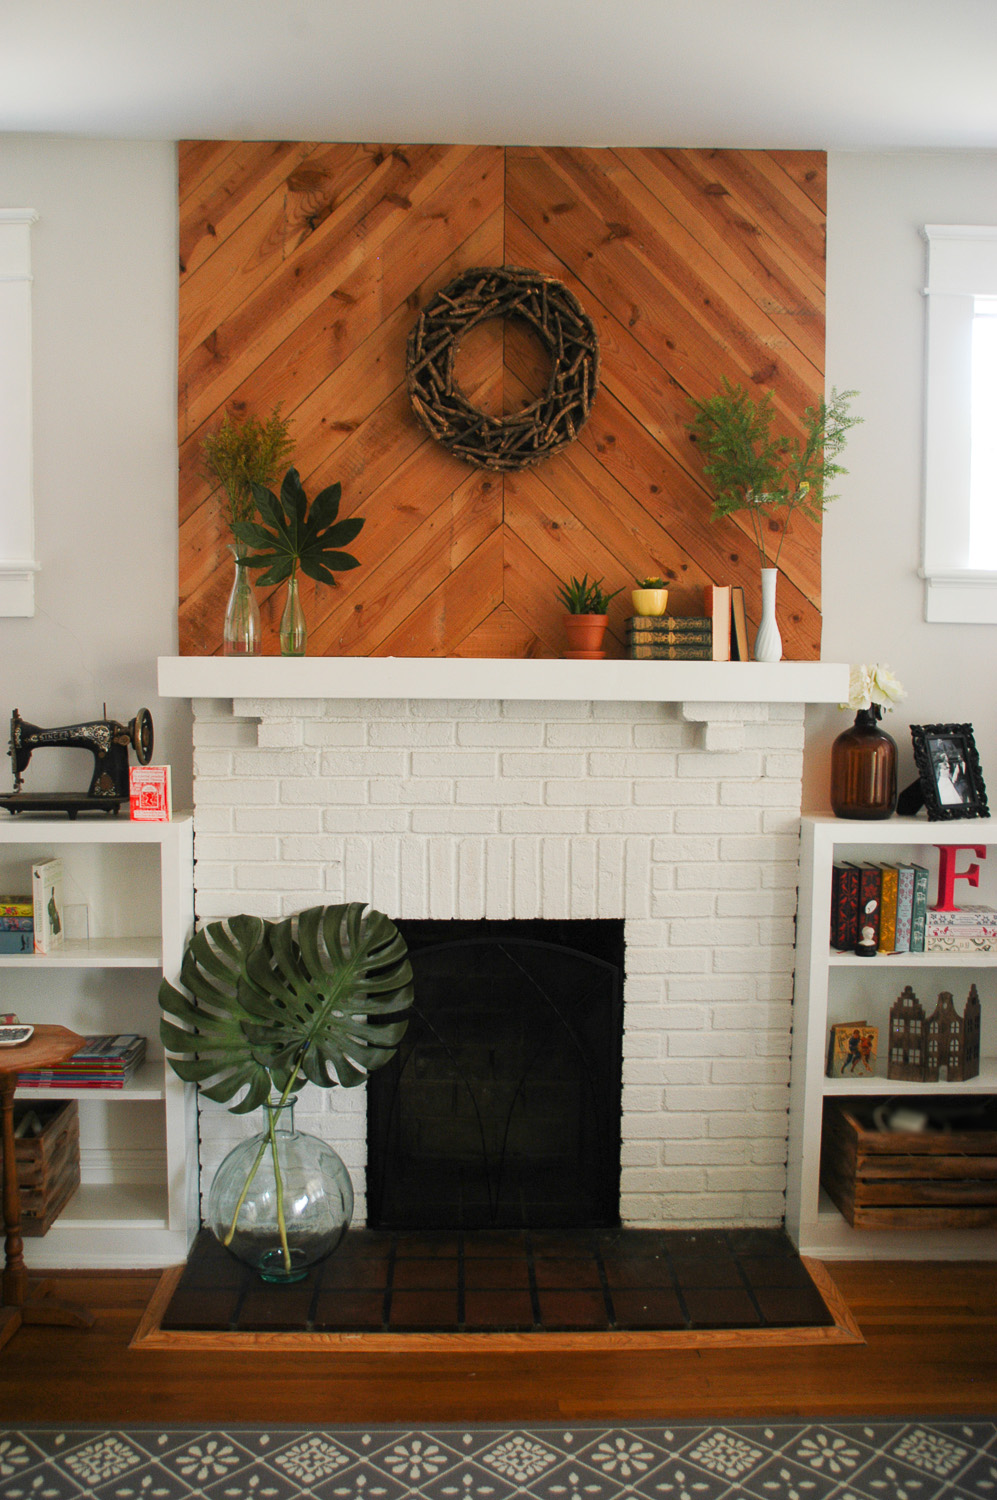 We added these wood slats to the fireplace to create some texture and height. Bonus: it didn't cost us anything! We had some old wiring that needed to be removed in the attic, and had to rip up a bunch of boards to get to them. Instead of throwing it all away, we just reused it inside the house! How's that for recycling?